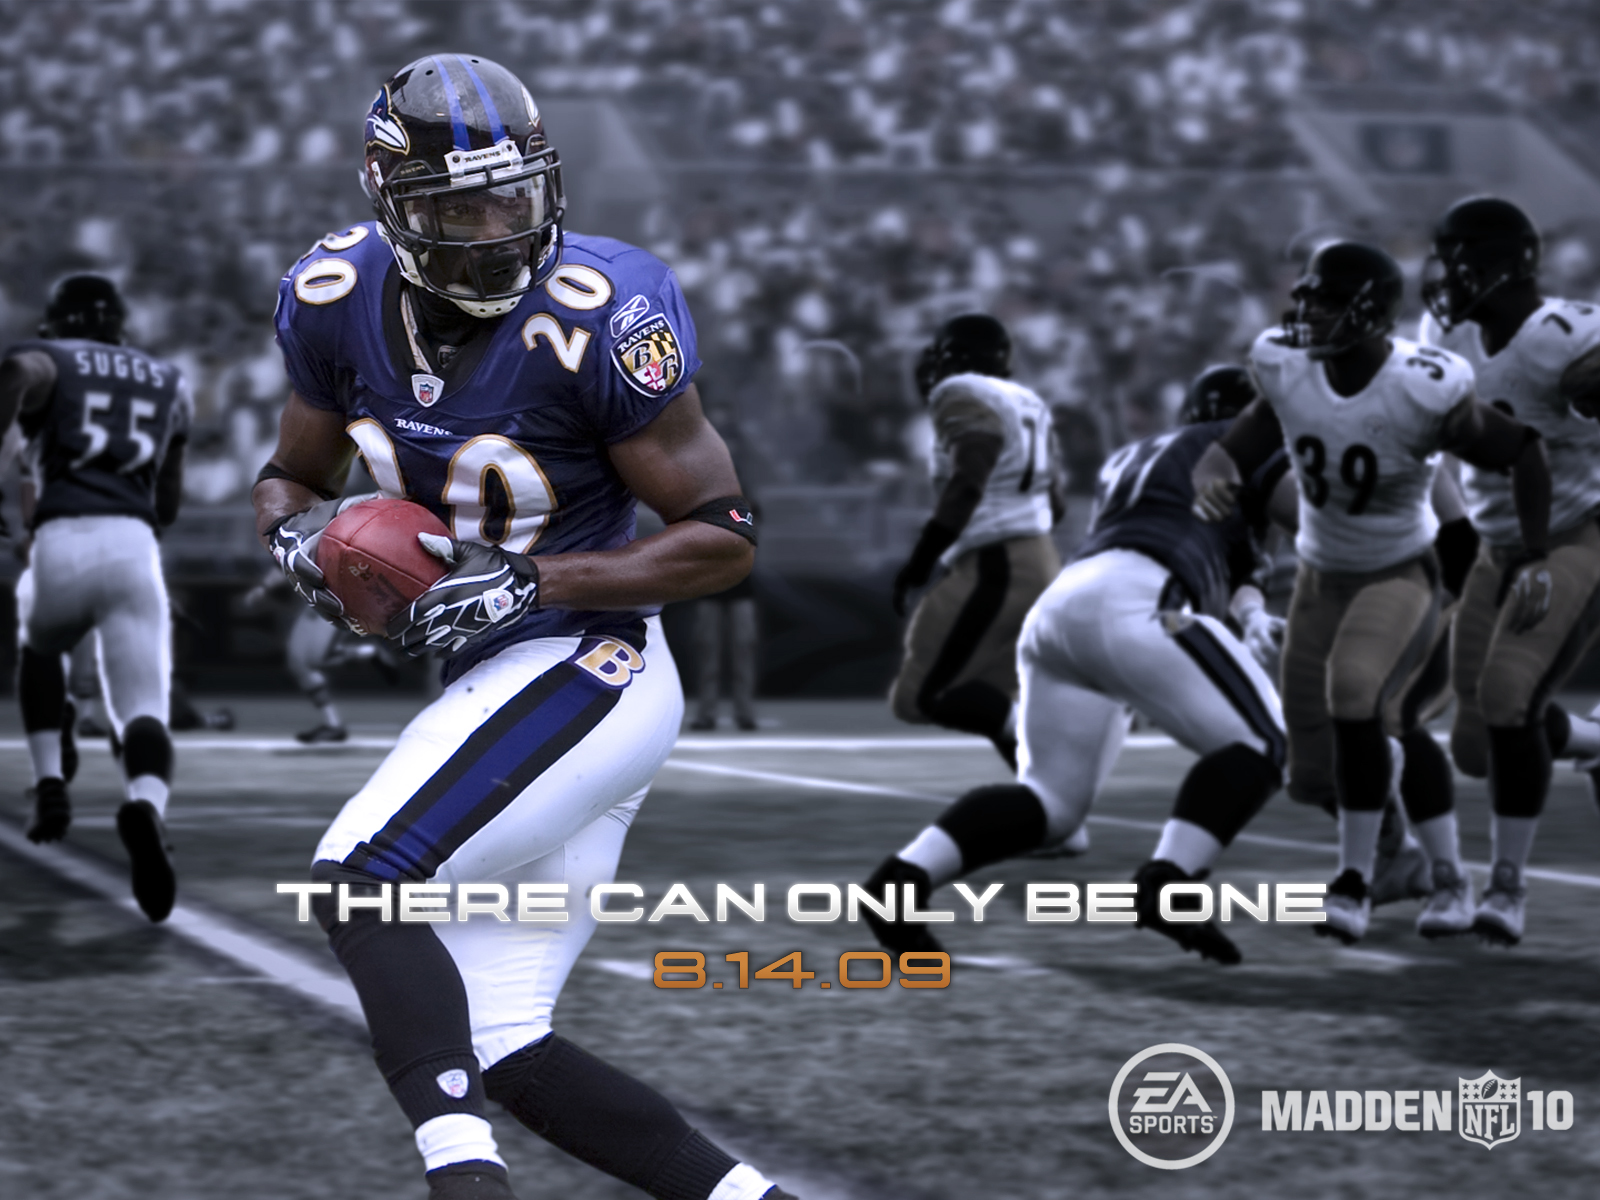 Wallpapers for Madden NFL 10 select size 1600x1200 1280x1024 1600x1200